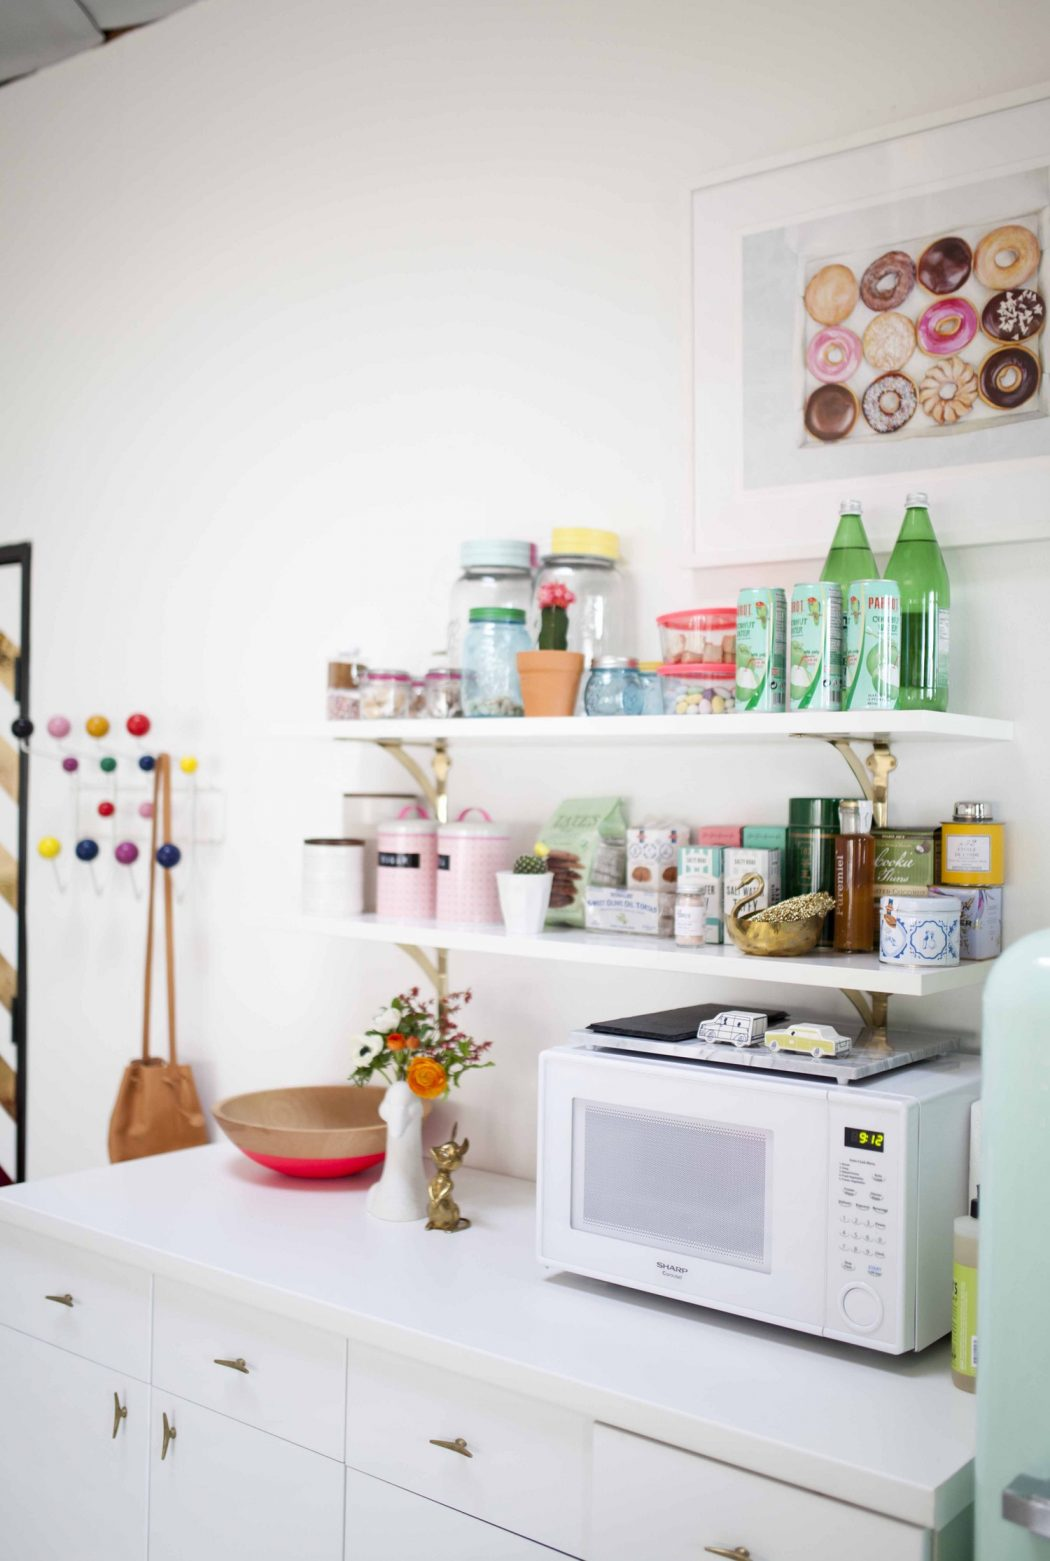 e837d3e84edc5b411f4d84755d9aae3b699d12a5 6 Affordable Organizing and Decoration Ideas for your Kitchen